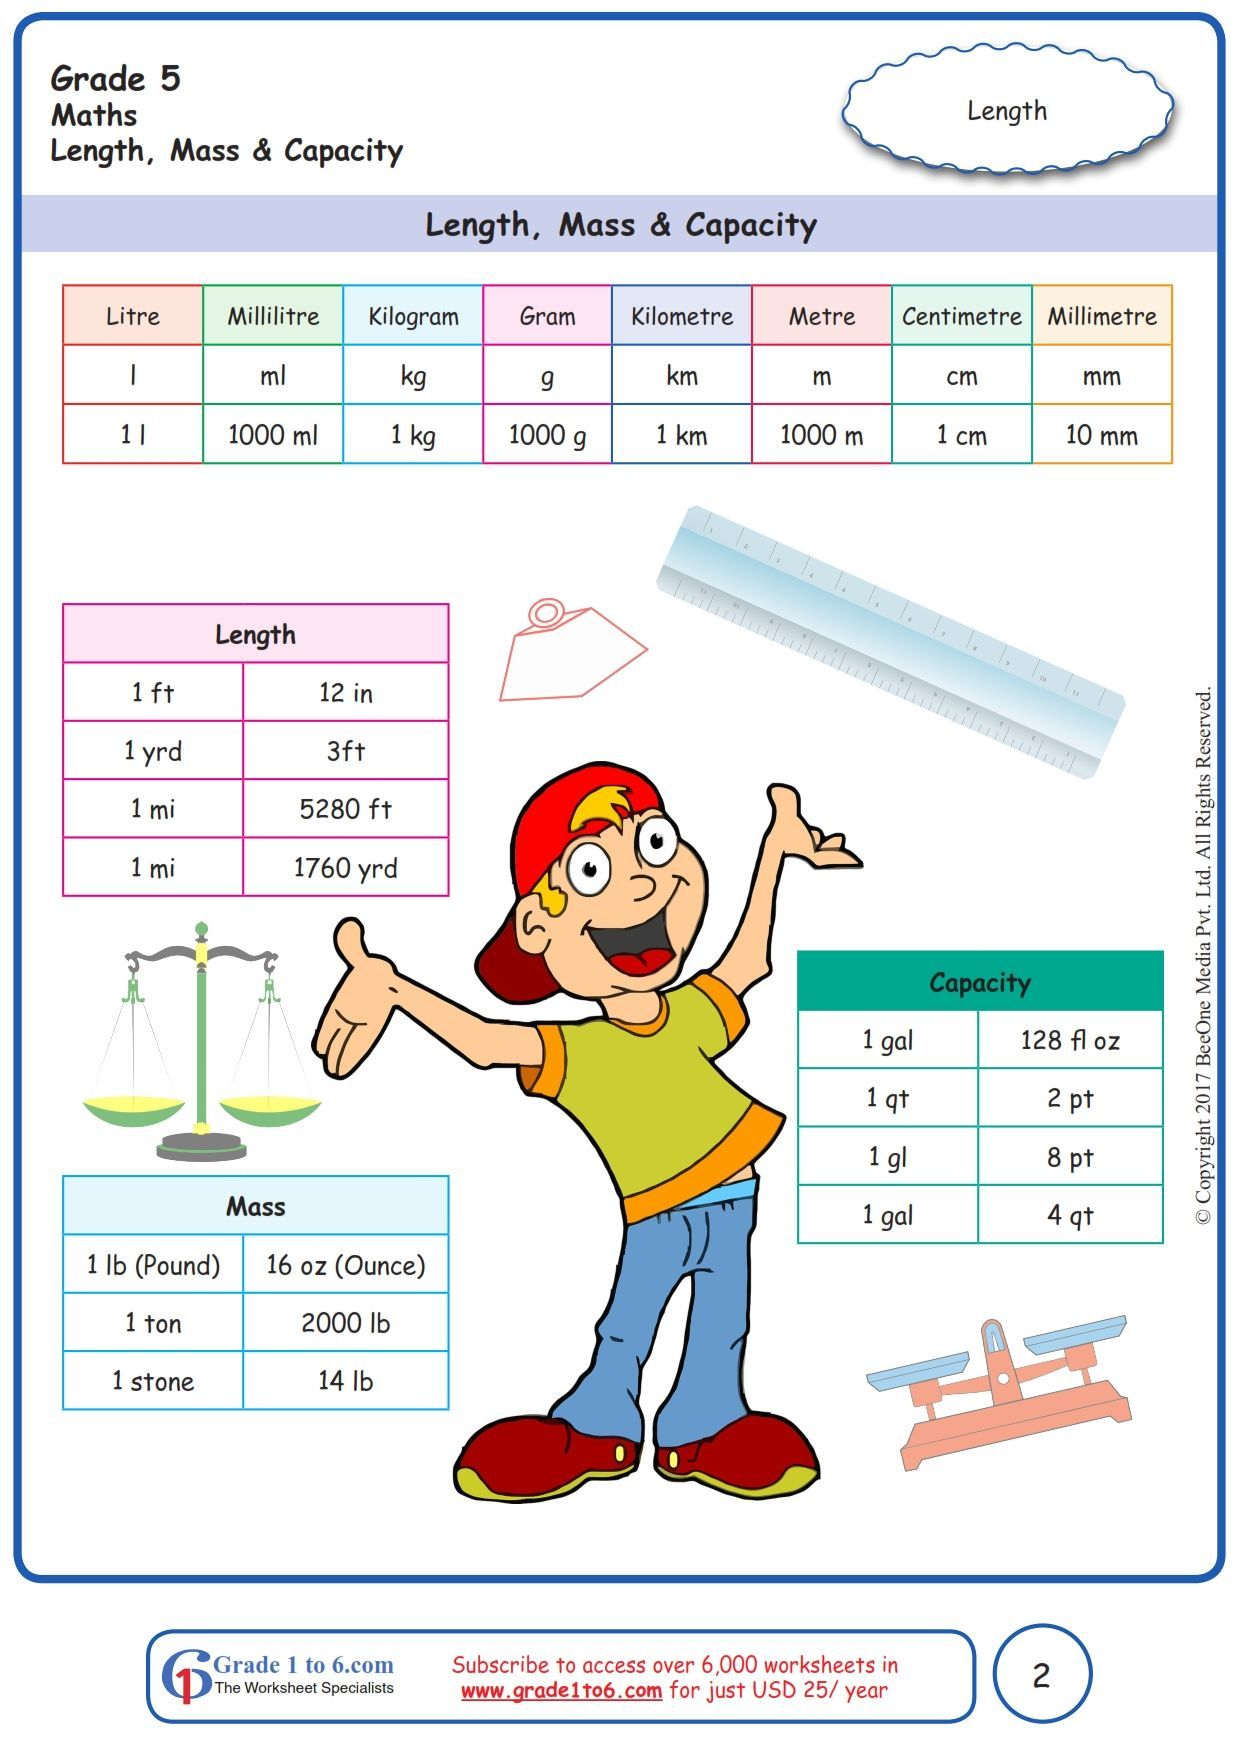 5th Grade Math Worksheet Printable Worksheets Are A Valuable School Room Tool They Not Only Supplement Your Teaching B In 2021 5th Grade Math Math Conversions Math [ 1754 x 1239 Pixel ]